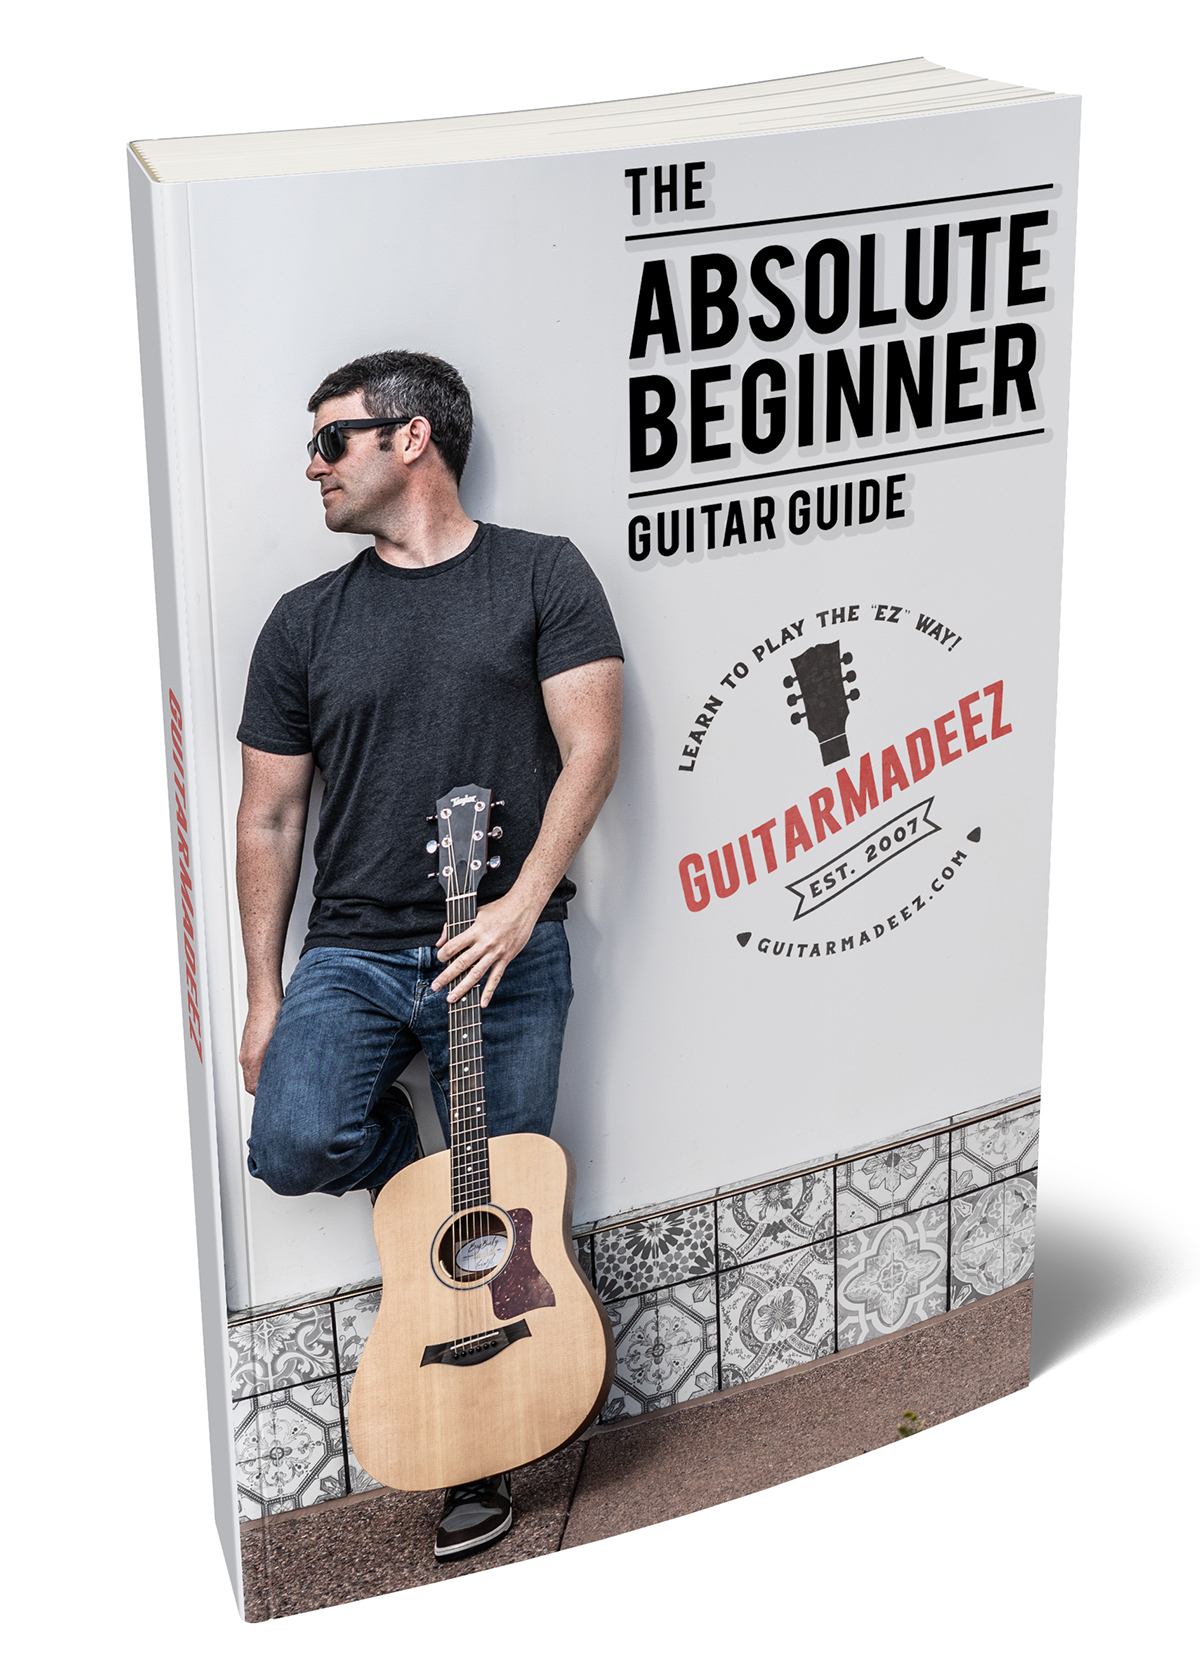 The Absolute Beginner Guitar Guide